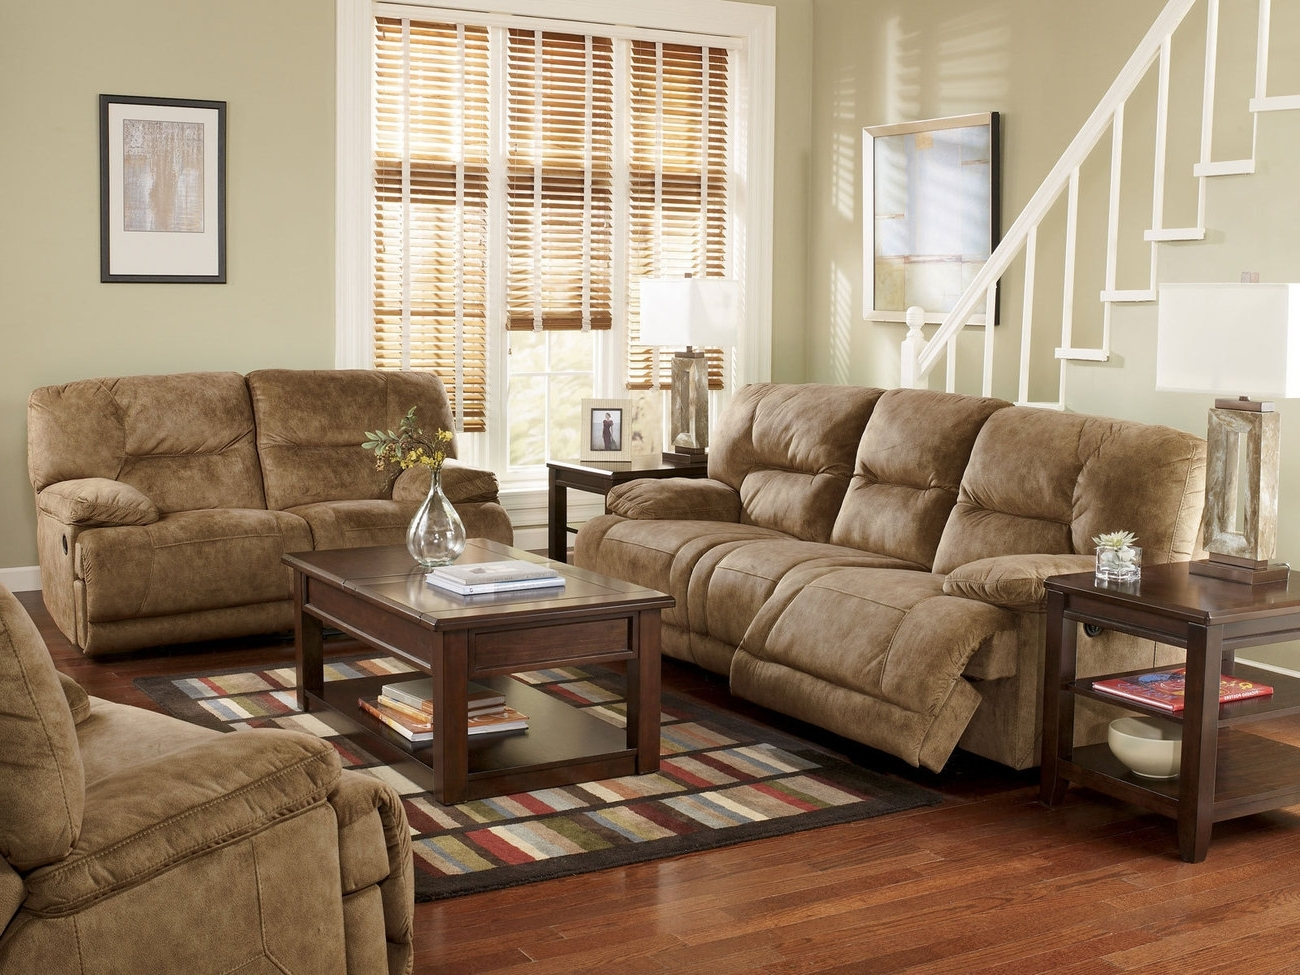 Living Room Sofa And Chair Sets Regarding Widely Used Avery Grey Fabric Sofa And Loveseat Set Steal Furniture Living (Gallery 11 of 20)